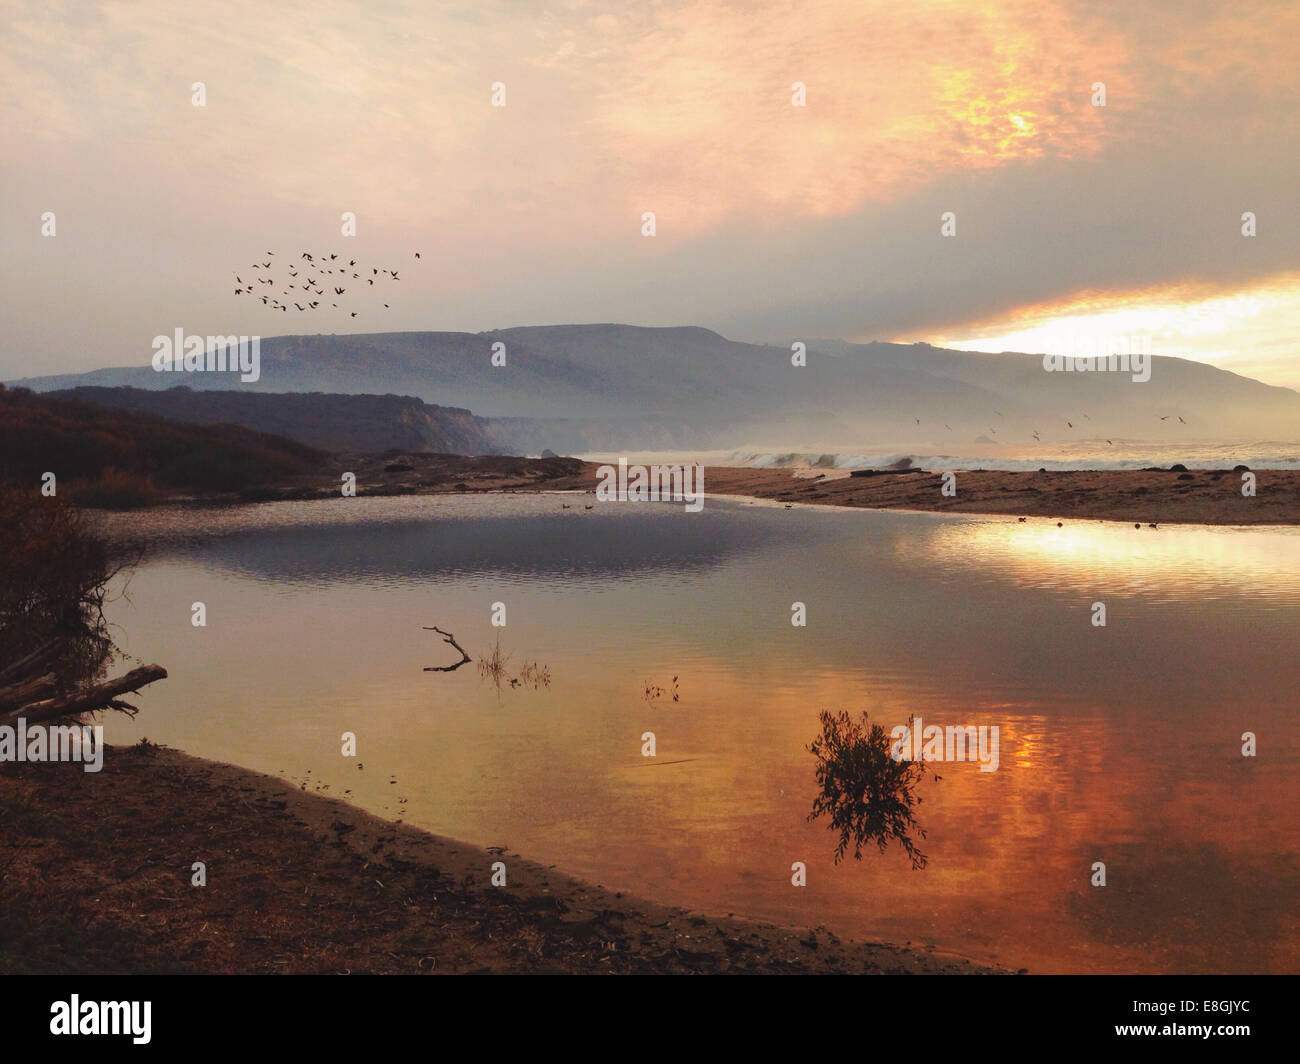 USA, California, Monterey County, Big Sur, Sunset - Stock Image